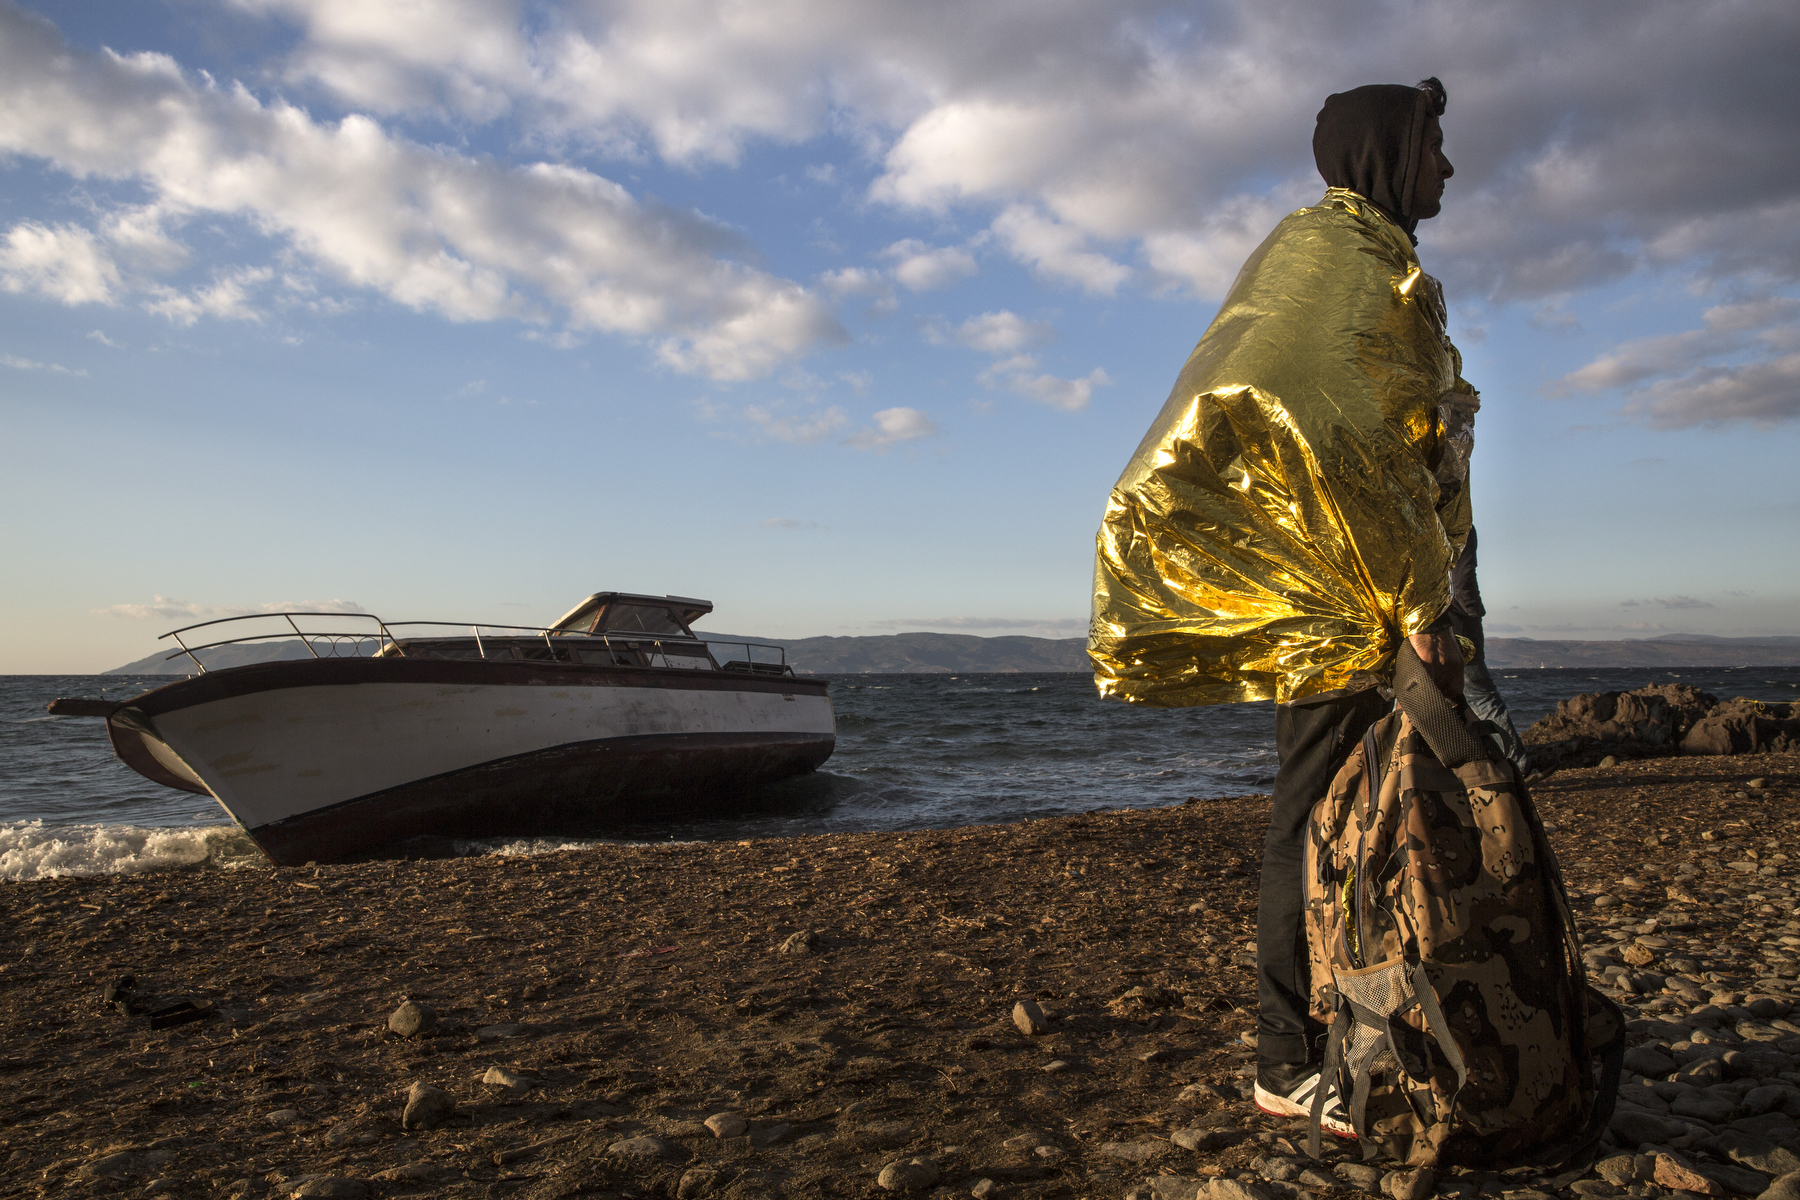 LESBOS, GREECE - OCTOBER 25: A refugee wrapped in an emergency blanket stands on Iftalou beach on Lesbos next to a refugee shipwreck. Colder weather and rough seas continue to cause deaths at sea as thousands travel in overcrowded small rafts. According to the IOM, an estimated 100,000 people landed in Greece, an average of almost 4,500 per day in late October and November. Nearly all of those entering Greece on a boat from Turkey are from the war zones of Syria, Iraq and Afghanistan. (Photo by Paula Bronstein)